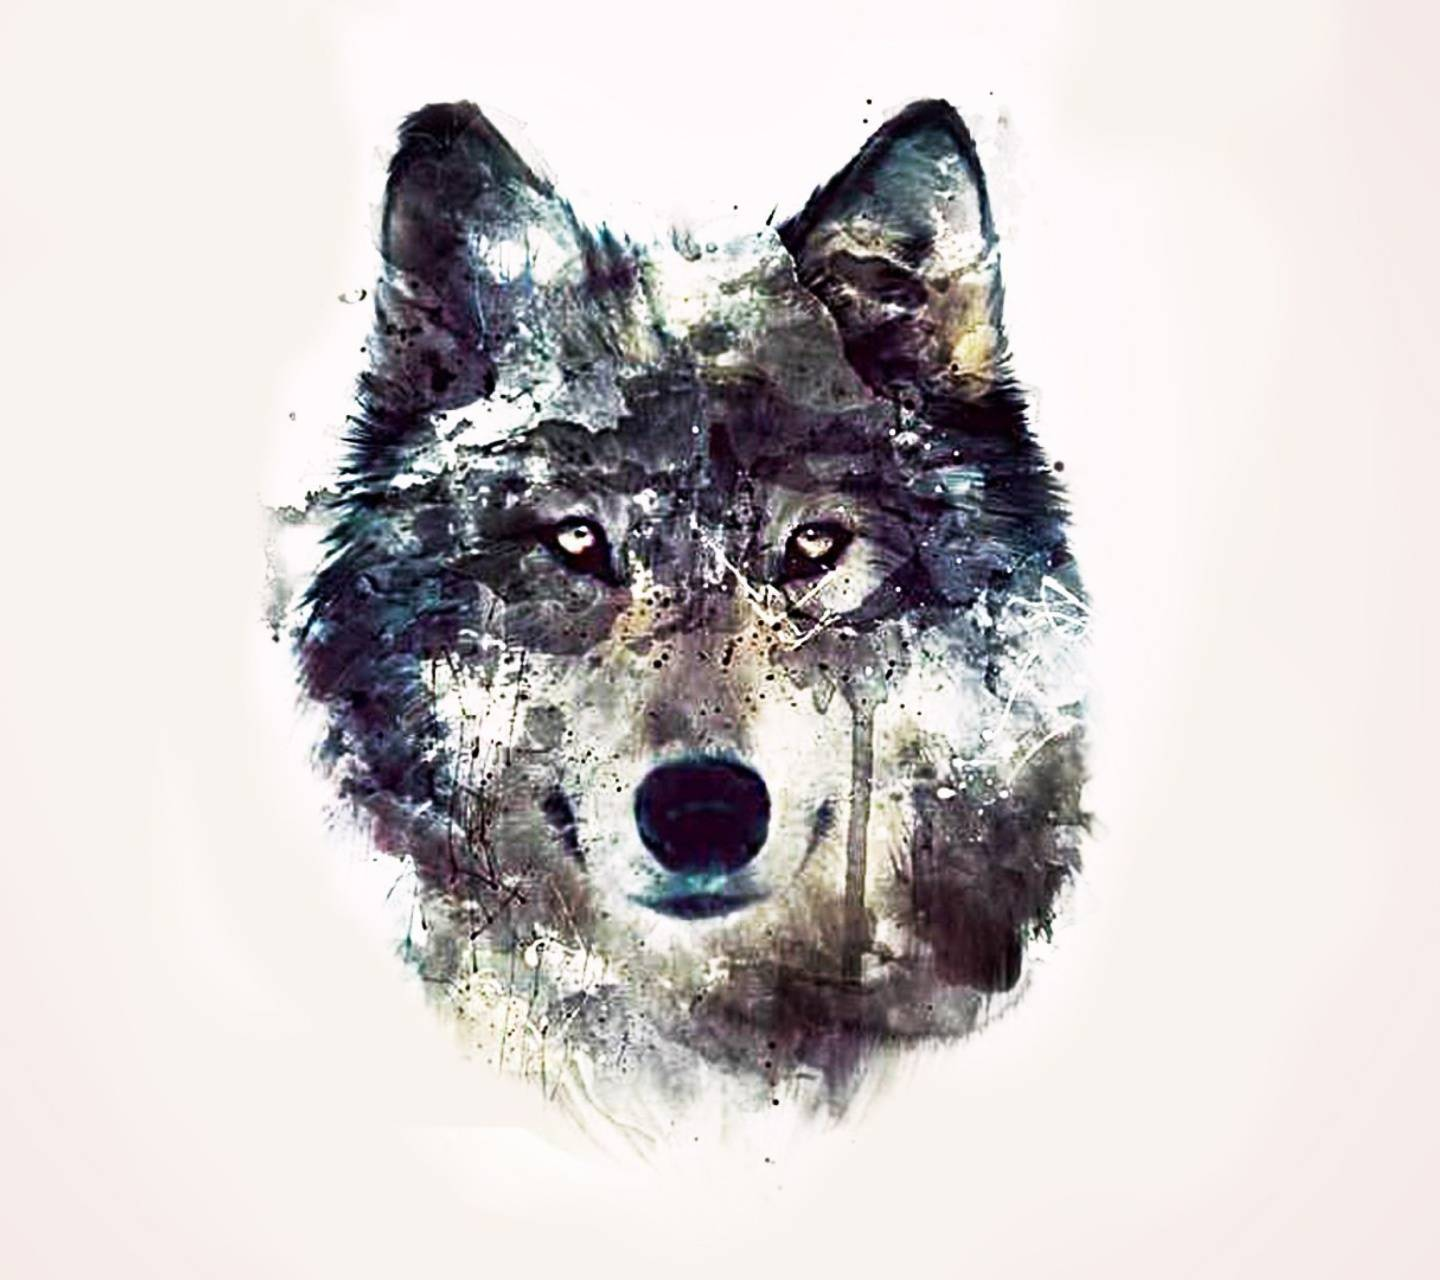 Wolf Wallpaper By Jonh2ce 74 Free On Zedge